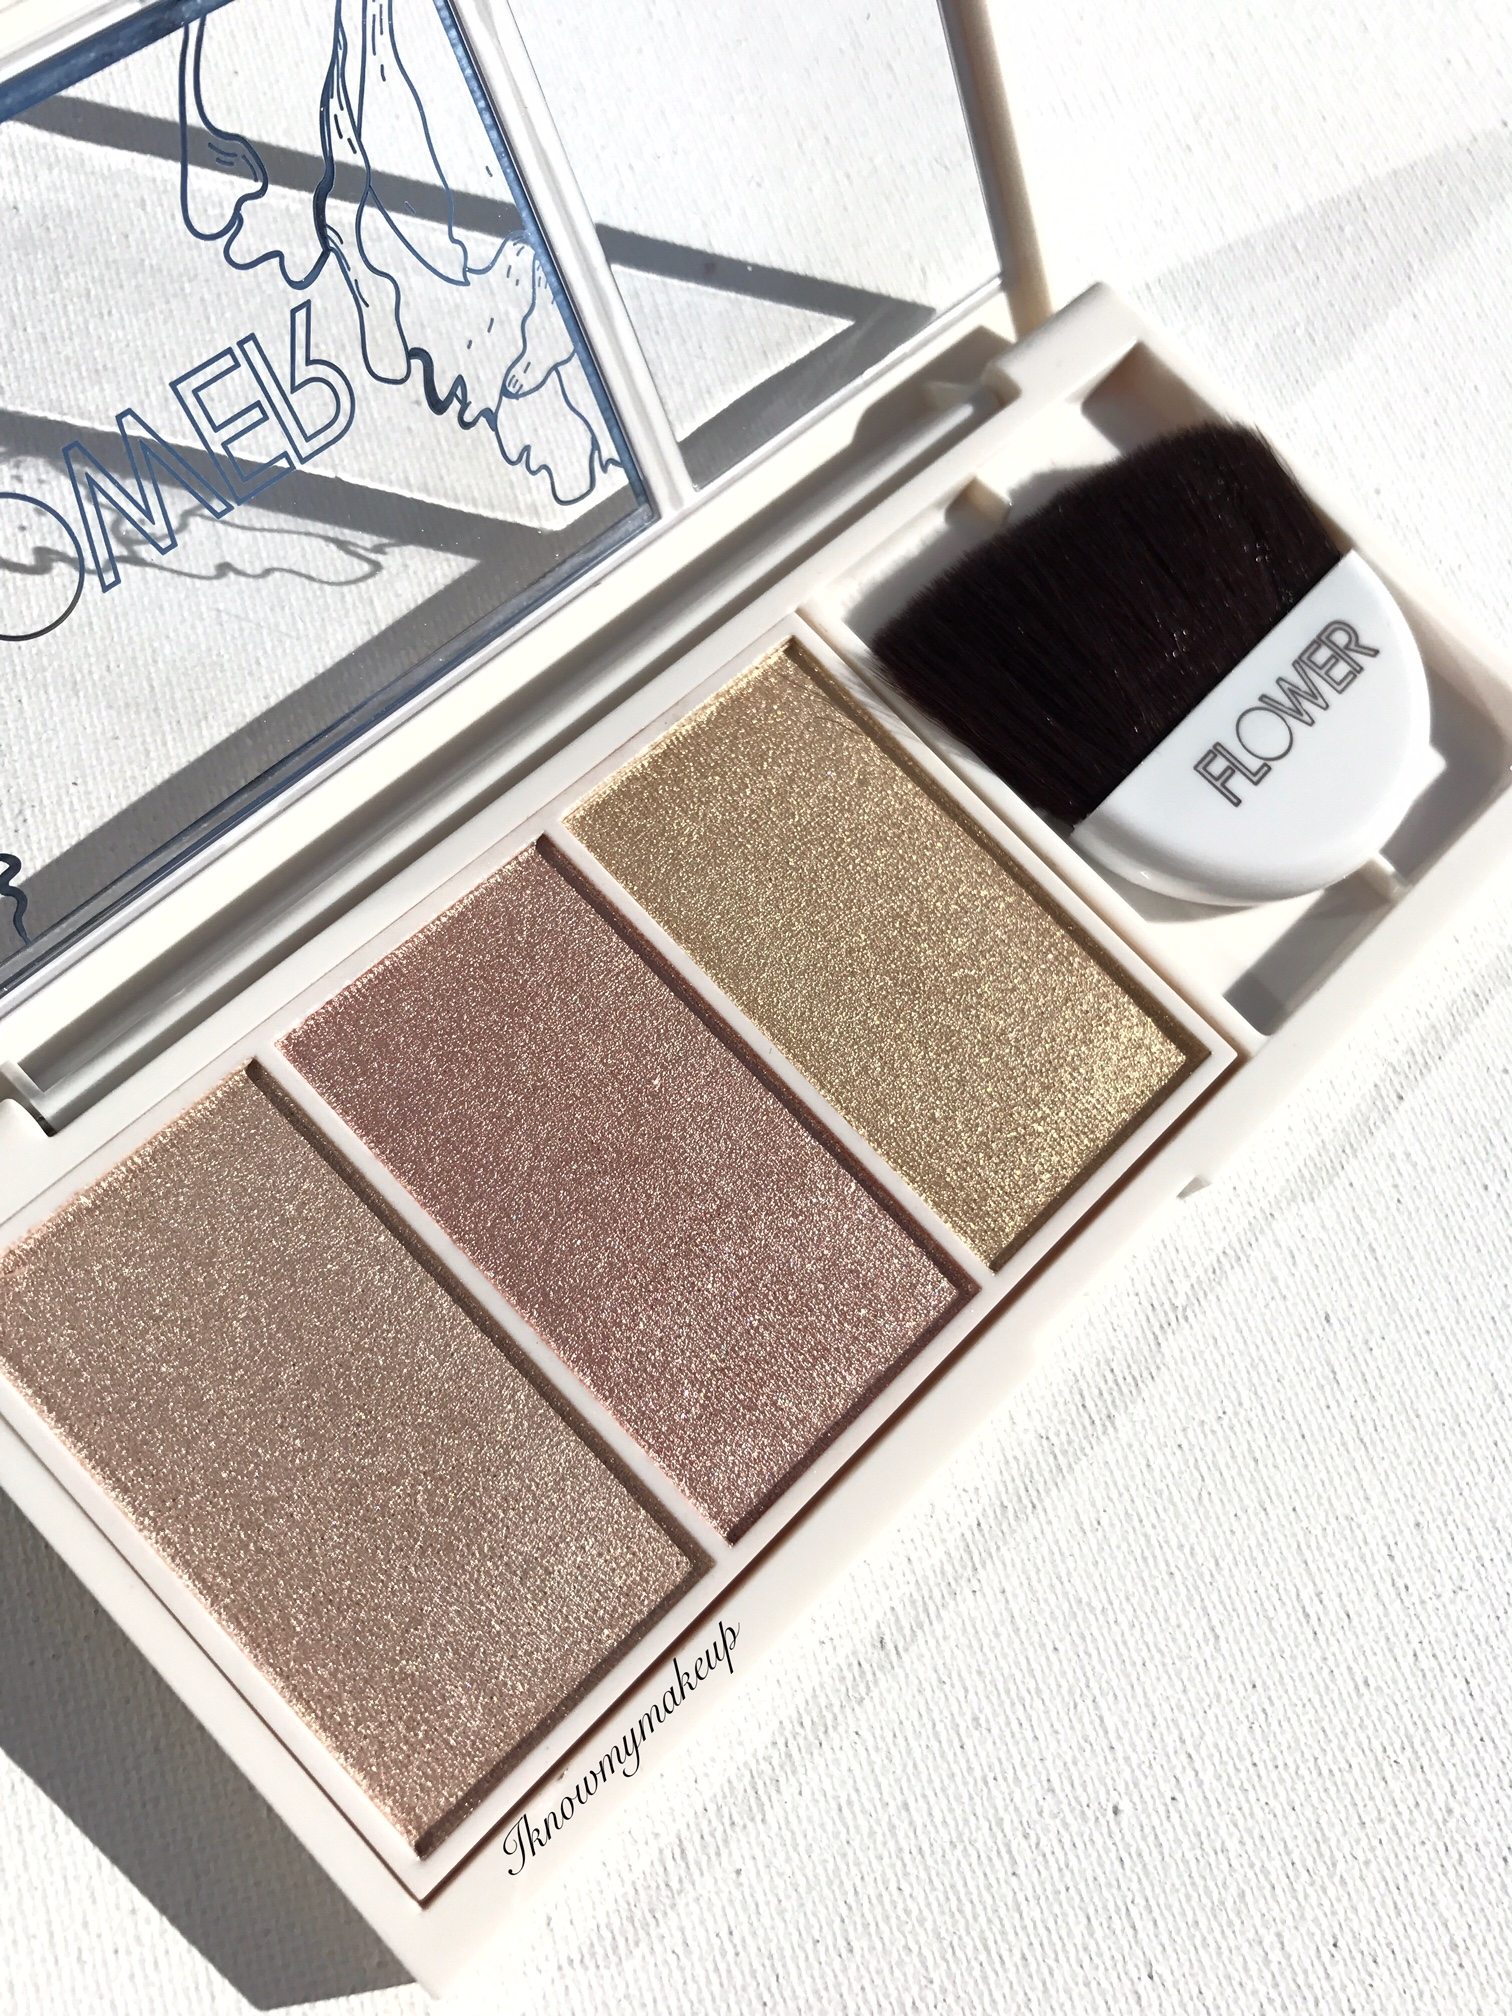 Flower Beauty Highlighting And Contour Palettes Spring 2017 I